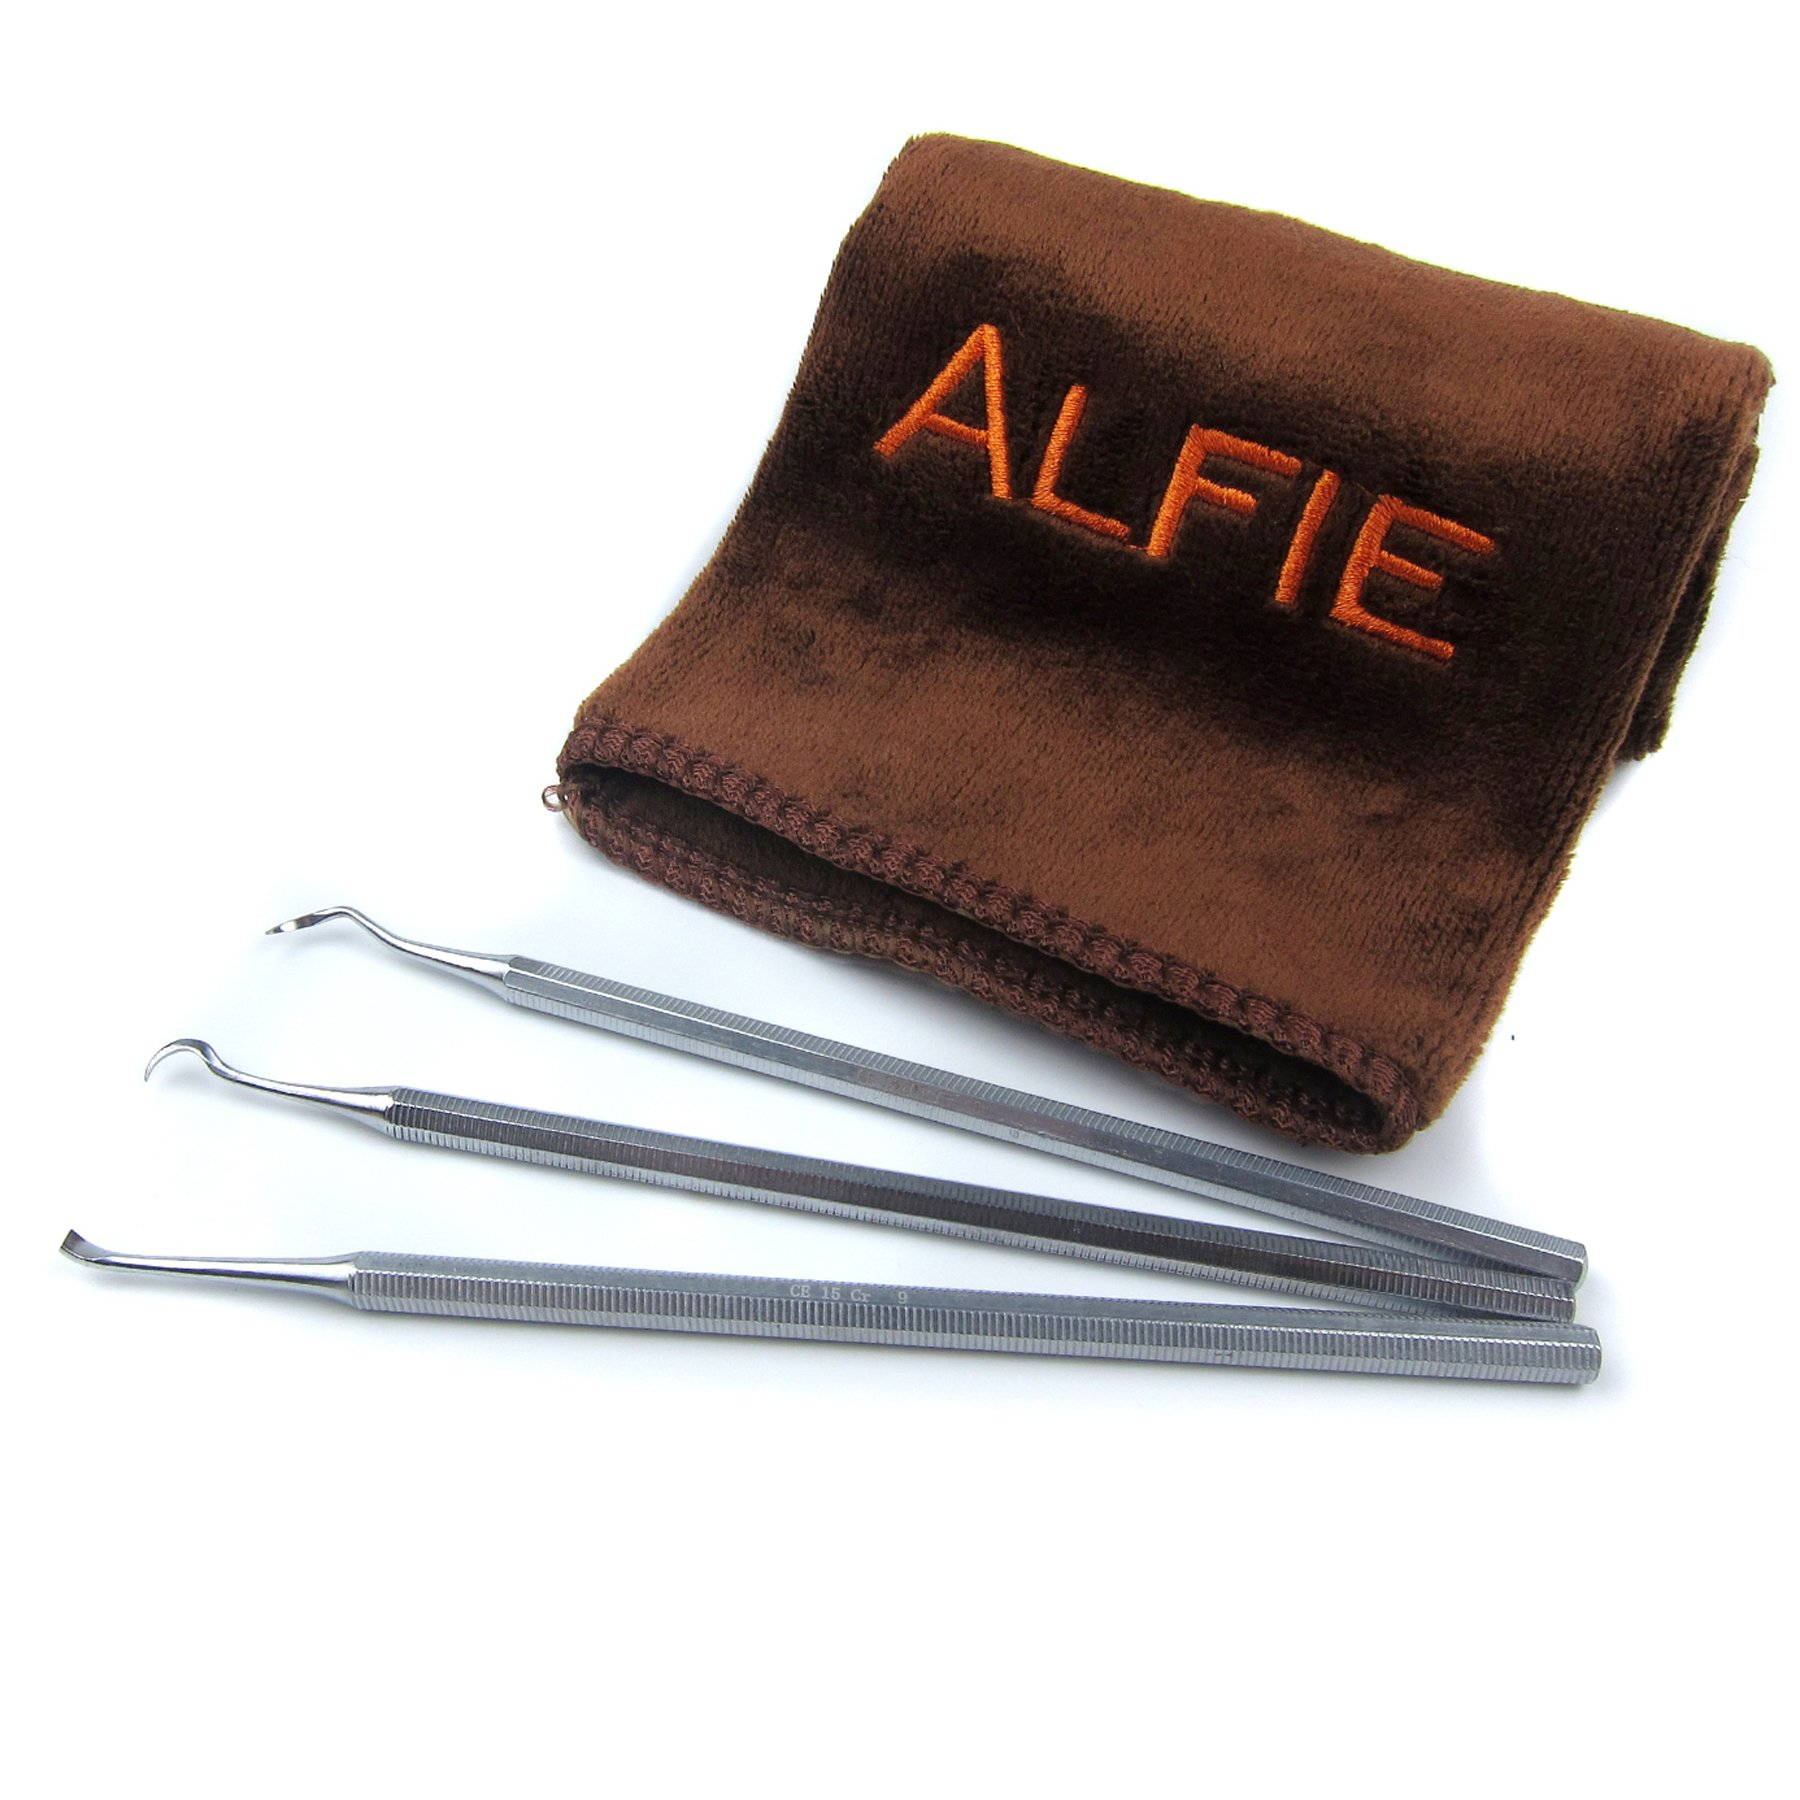 Alfie Pet by Petoga Couture - Dagan Dental Tarter Remover/Scraper 3-piece Set with Microfiber Fast-Dry Washcloth